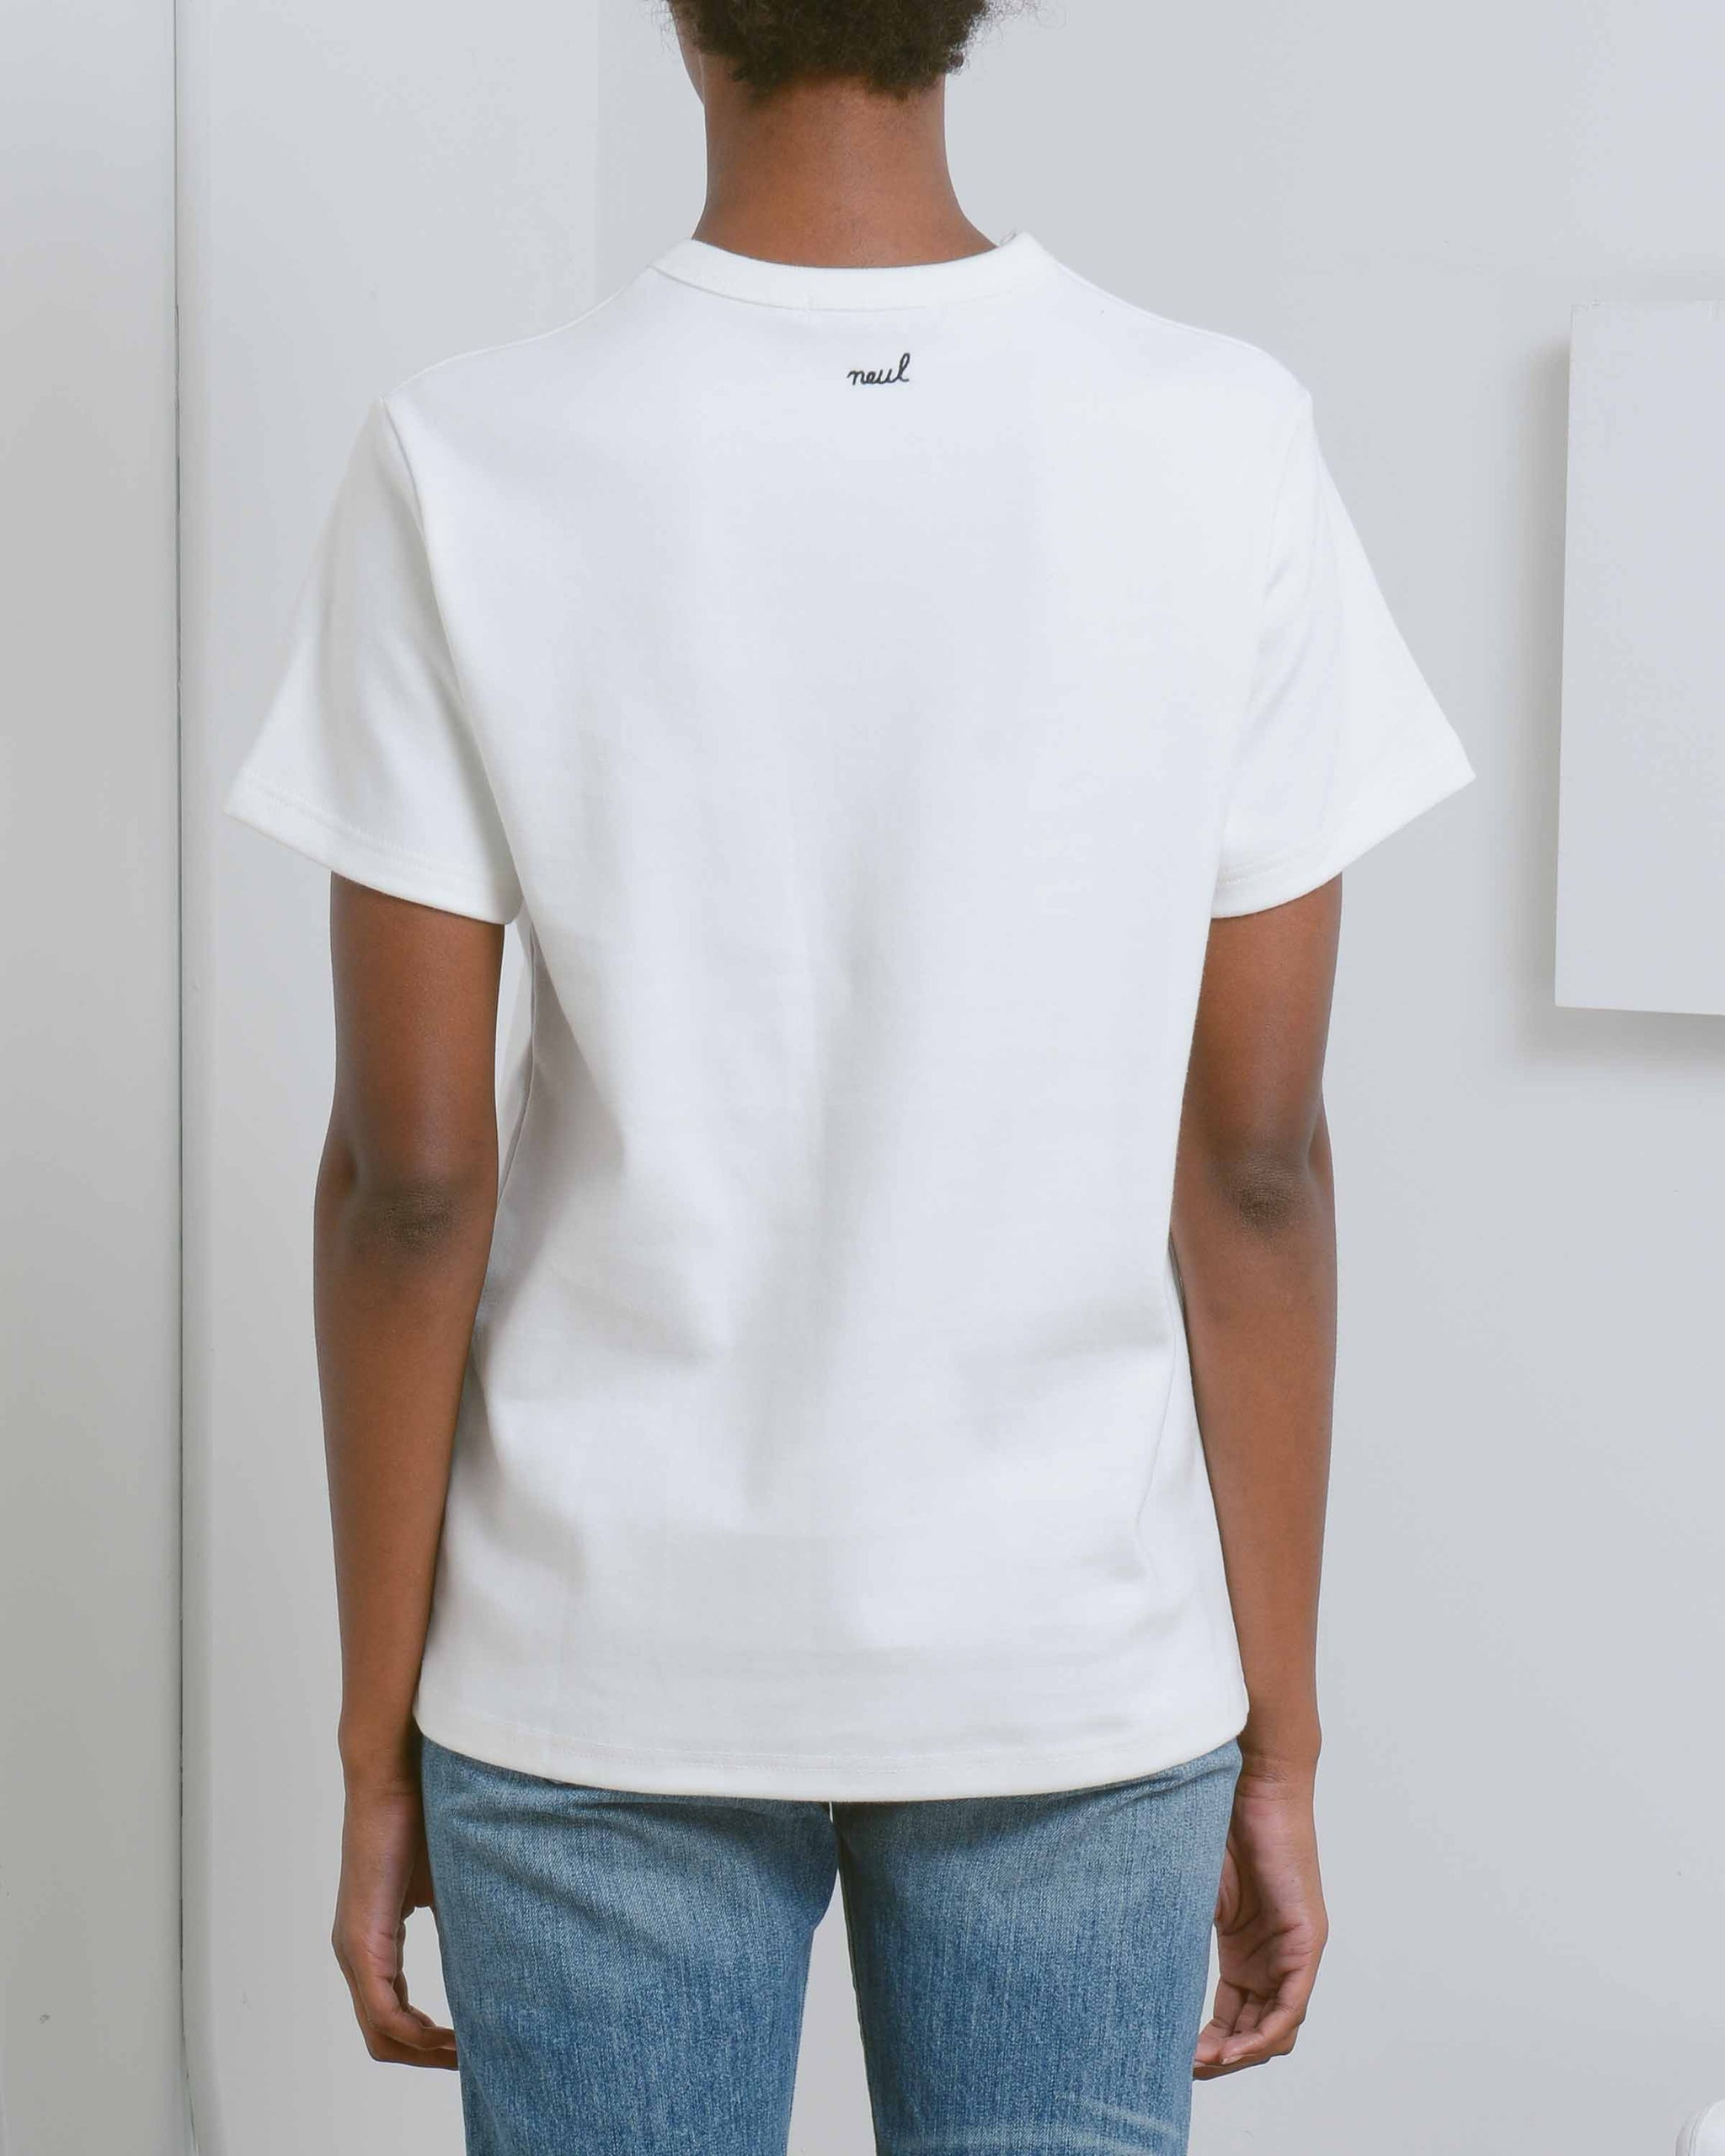 White Inapsquare Collaboration T-Shirt